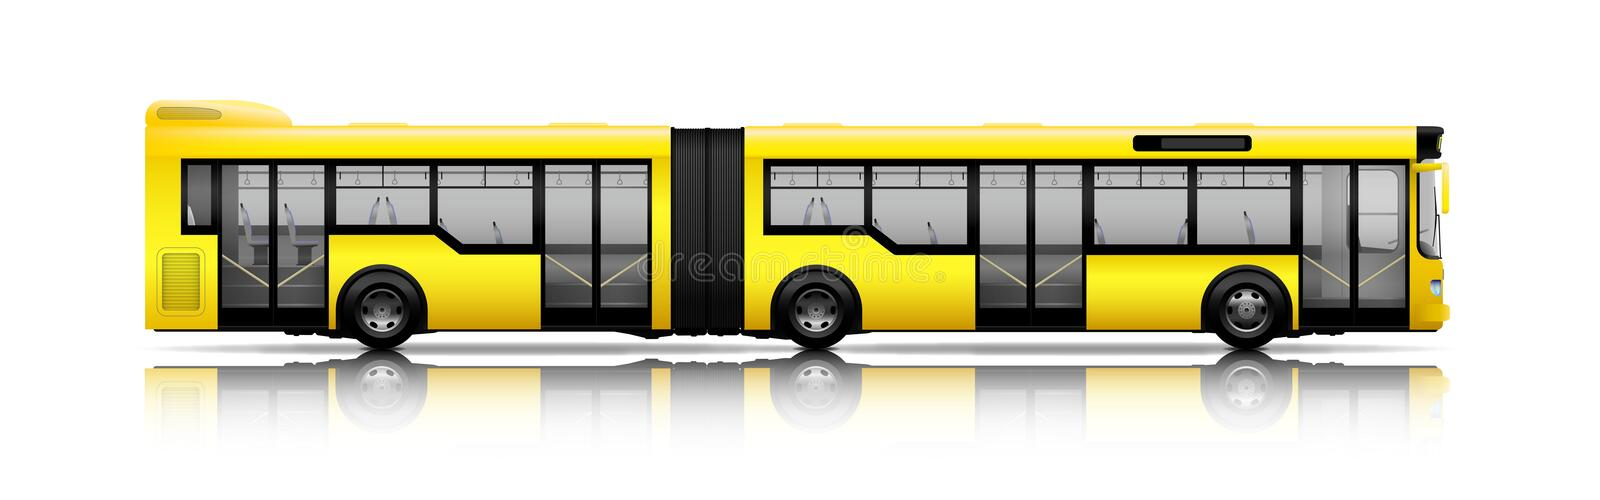 Long city bus royalty free illustration